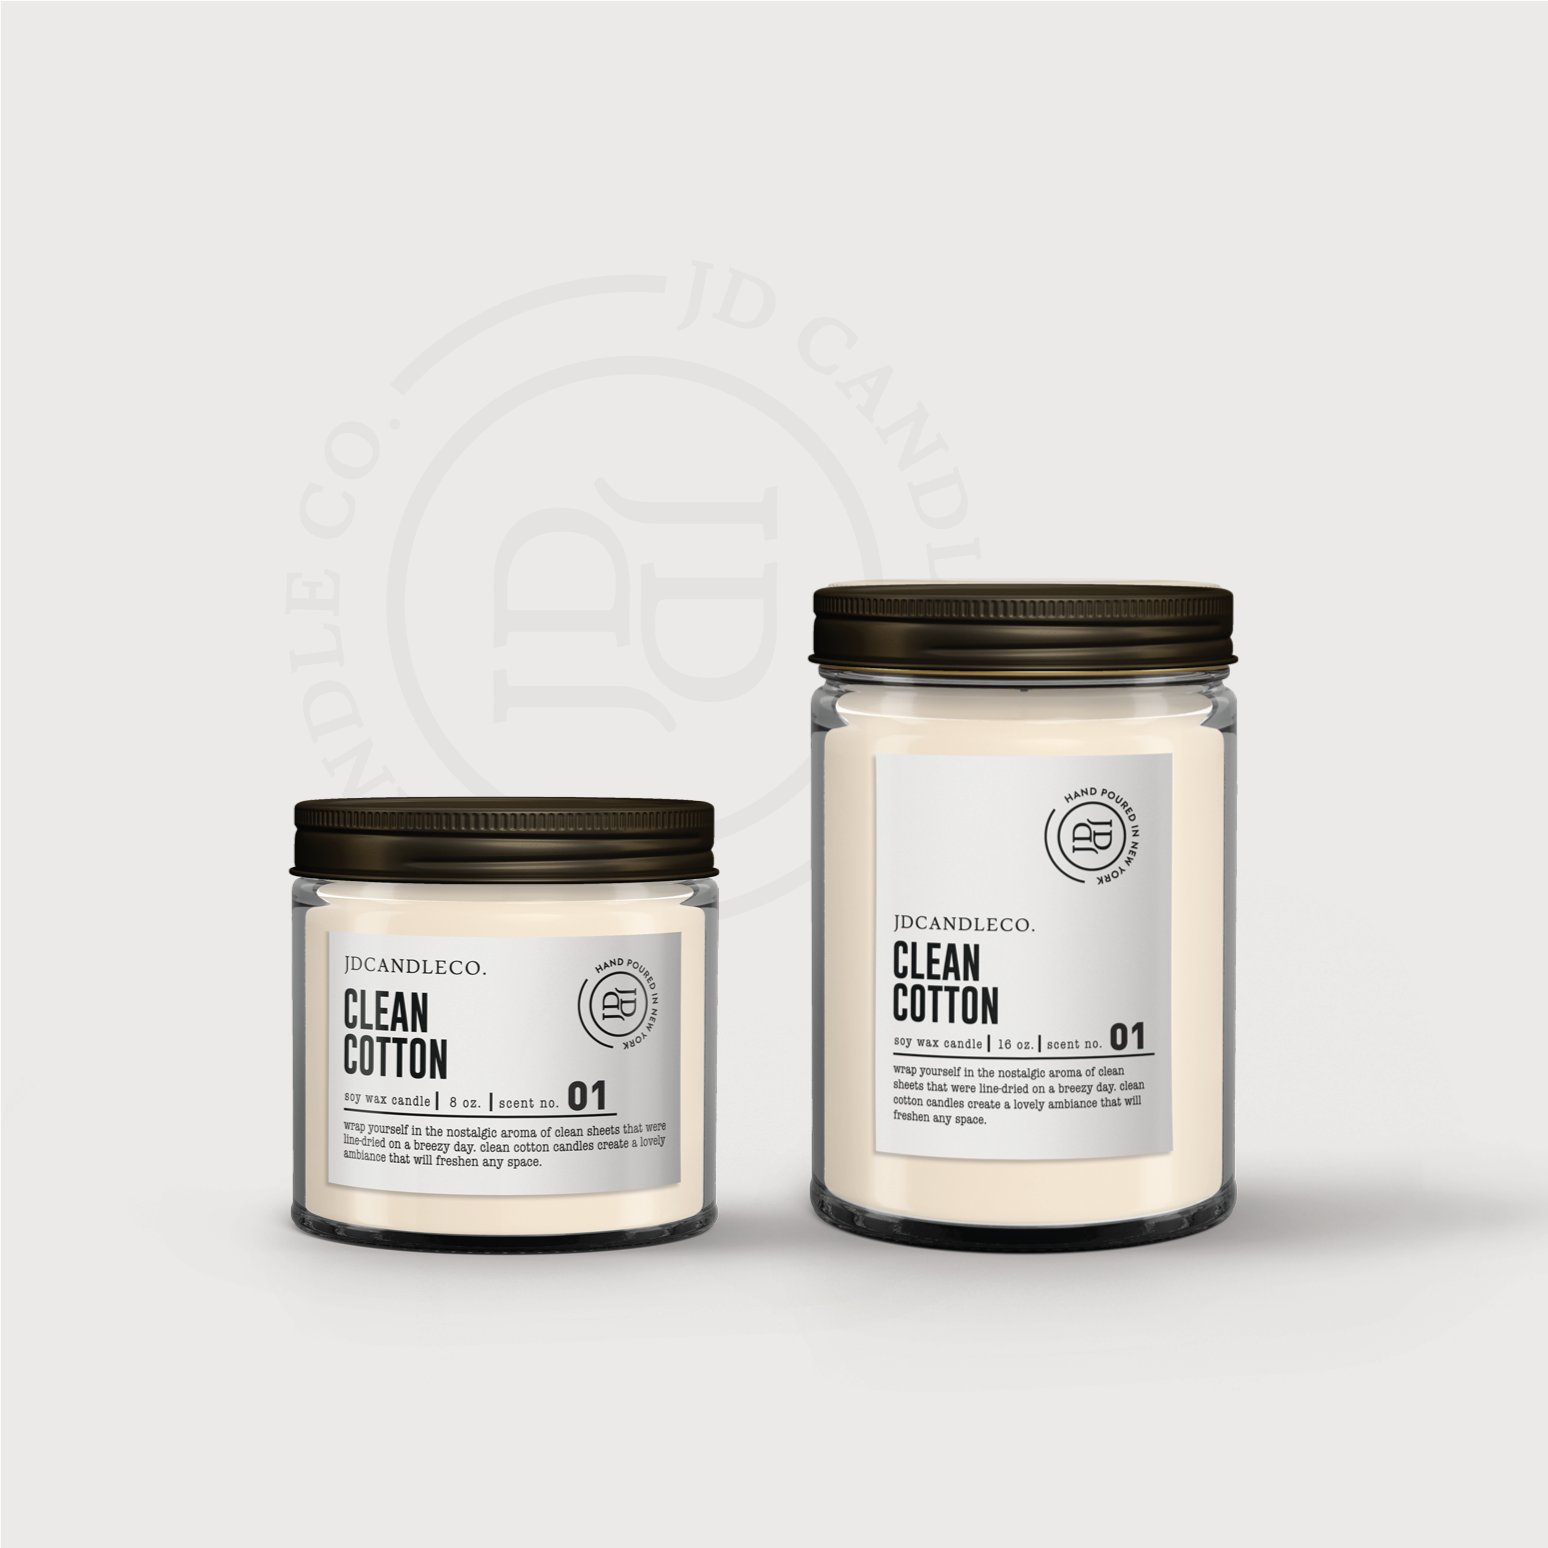 JD Candle Co